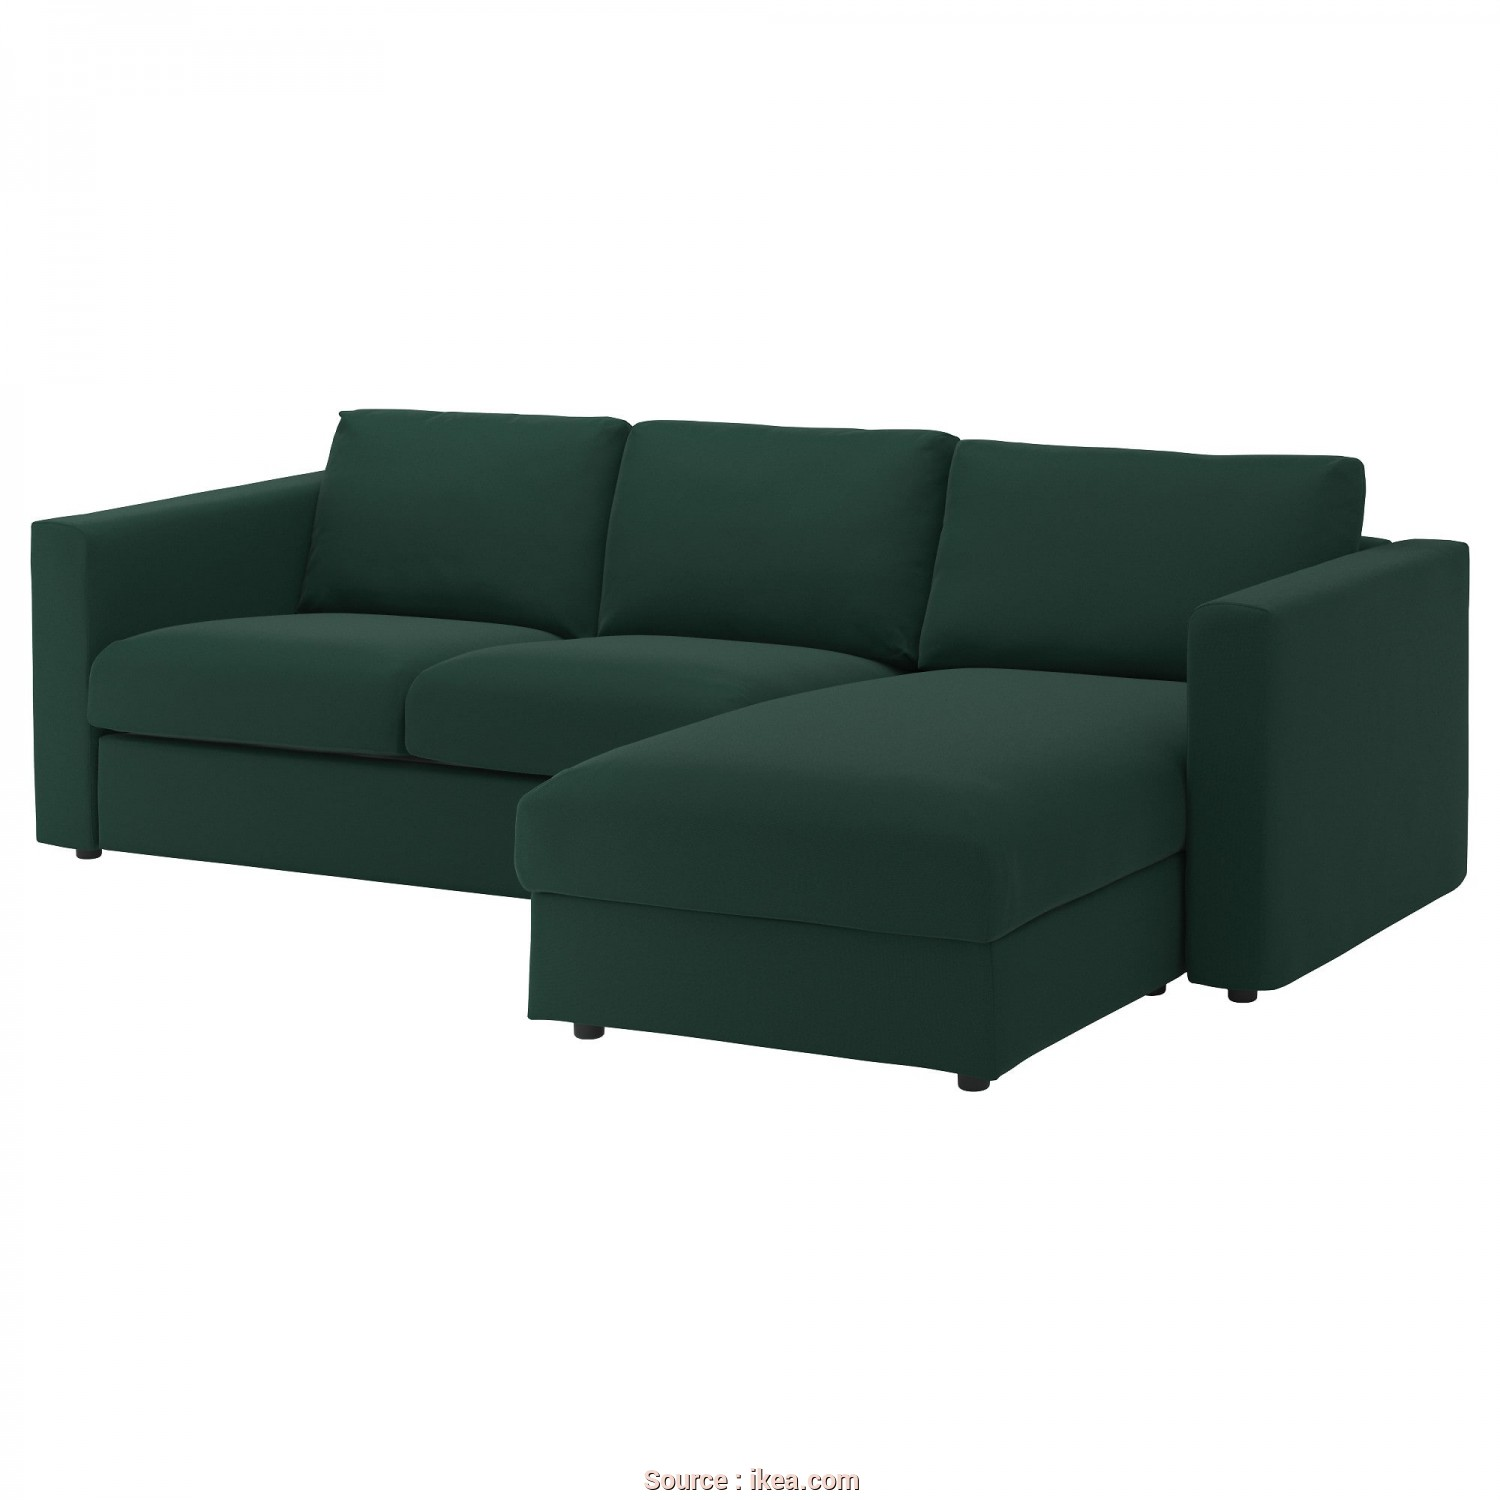 Ikea Klippan 3 Seter, Bello IKEA VIMLE 3-Seat Sofa, Cover Is Easy To Keep Clean Since It Is